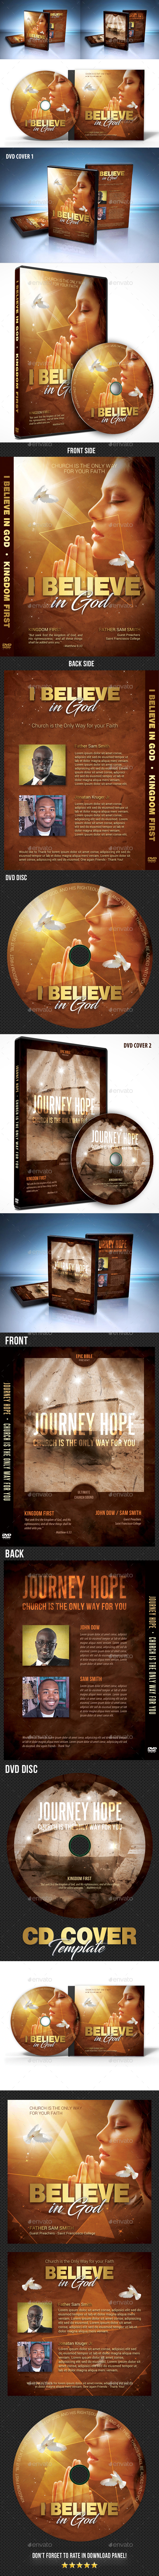 GraphicRiver Church CD DVD Covers Bundle 20939964